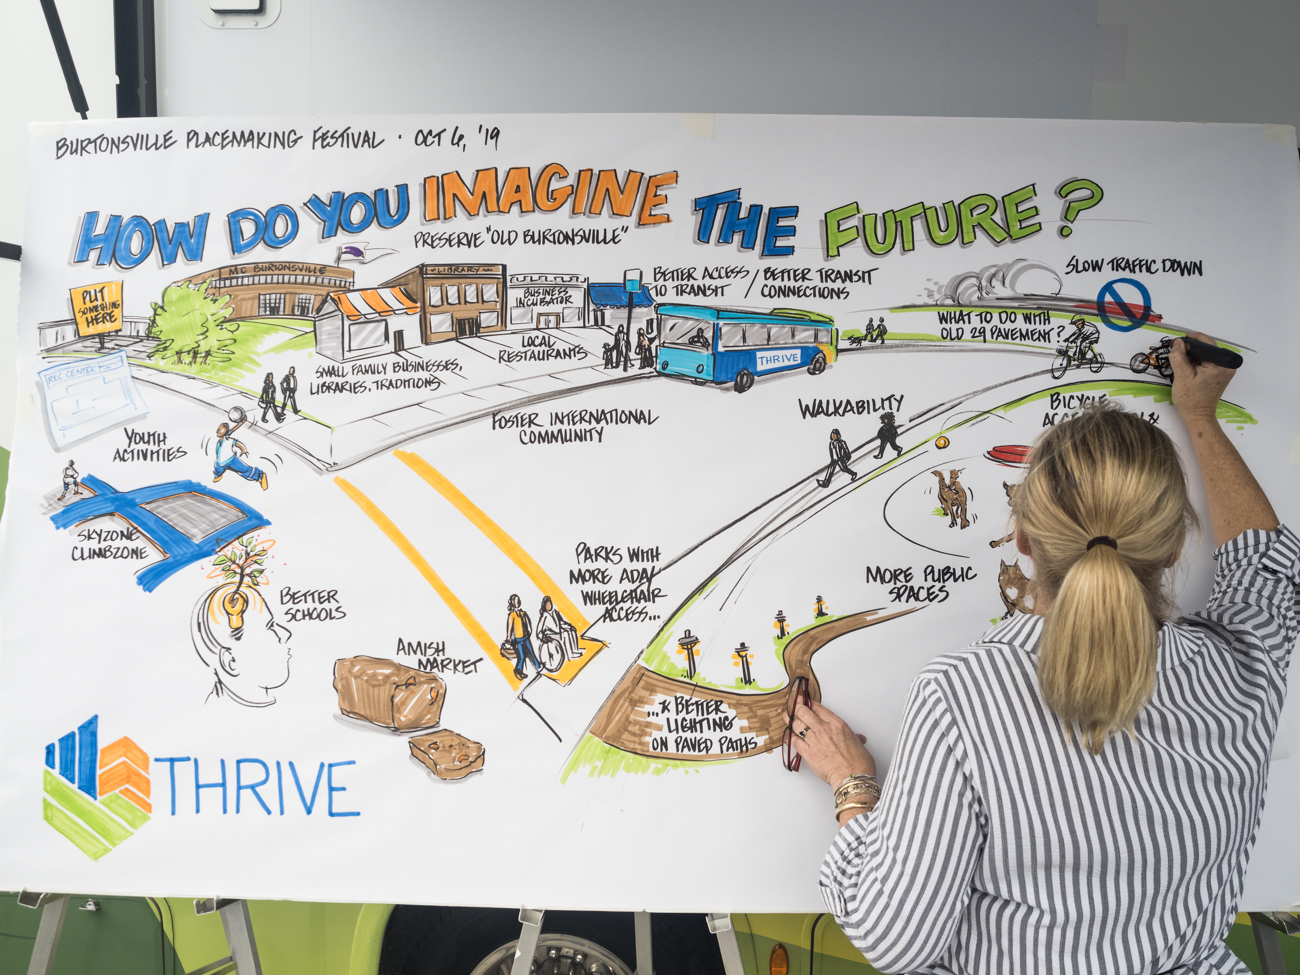 Graphic recording artist at Burtonsville Placemaking Festival